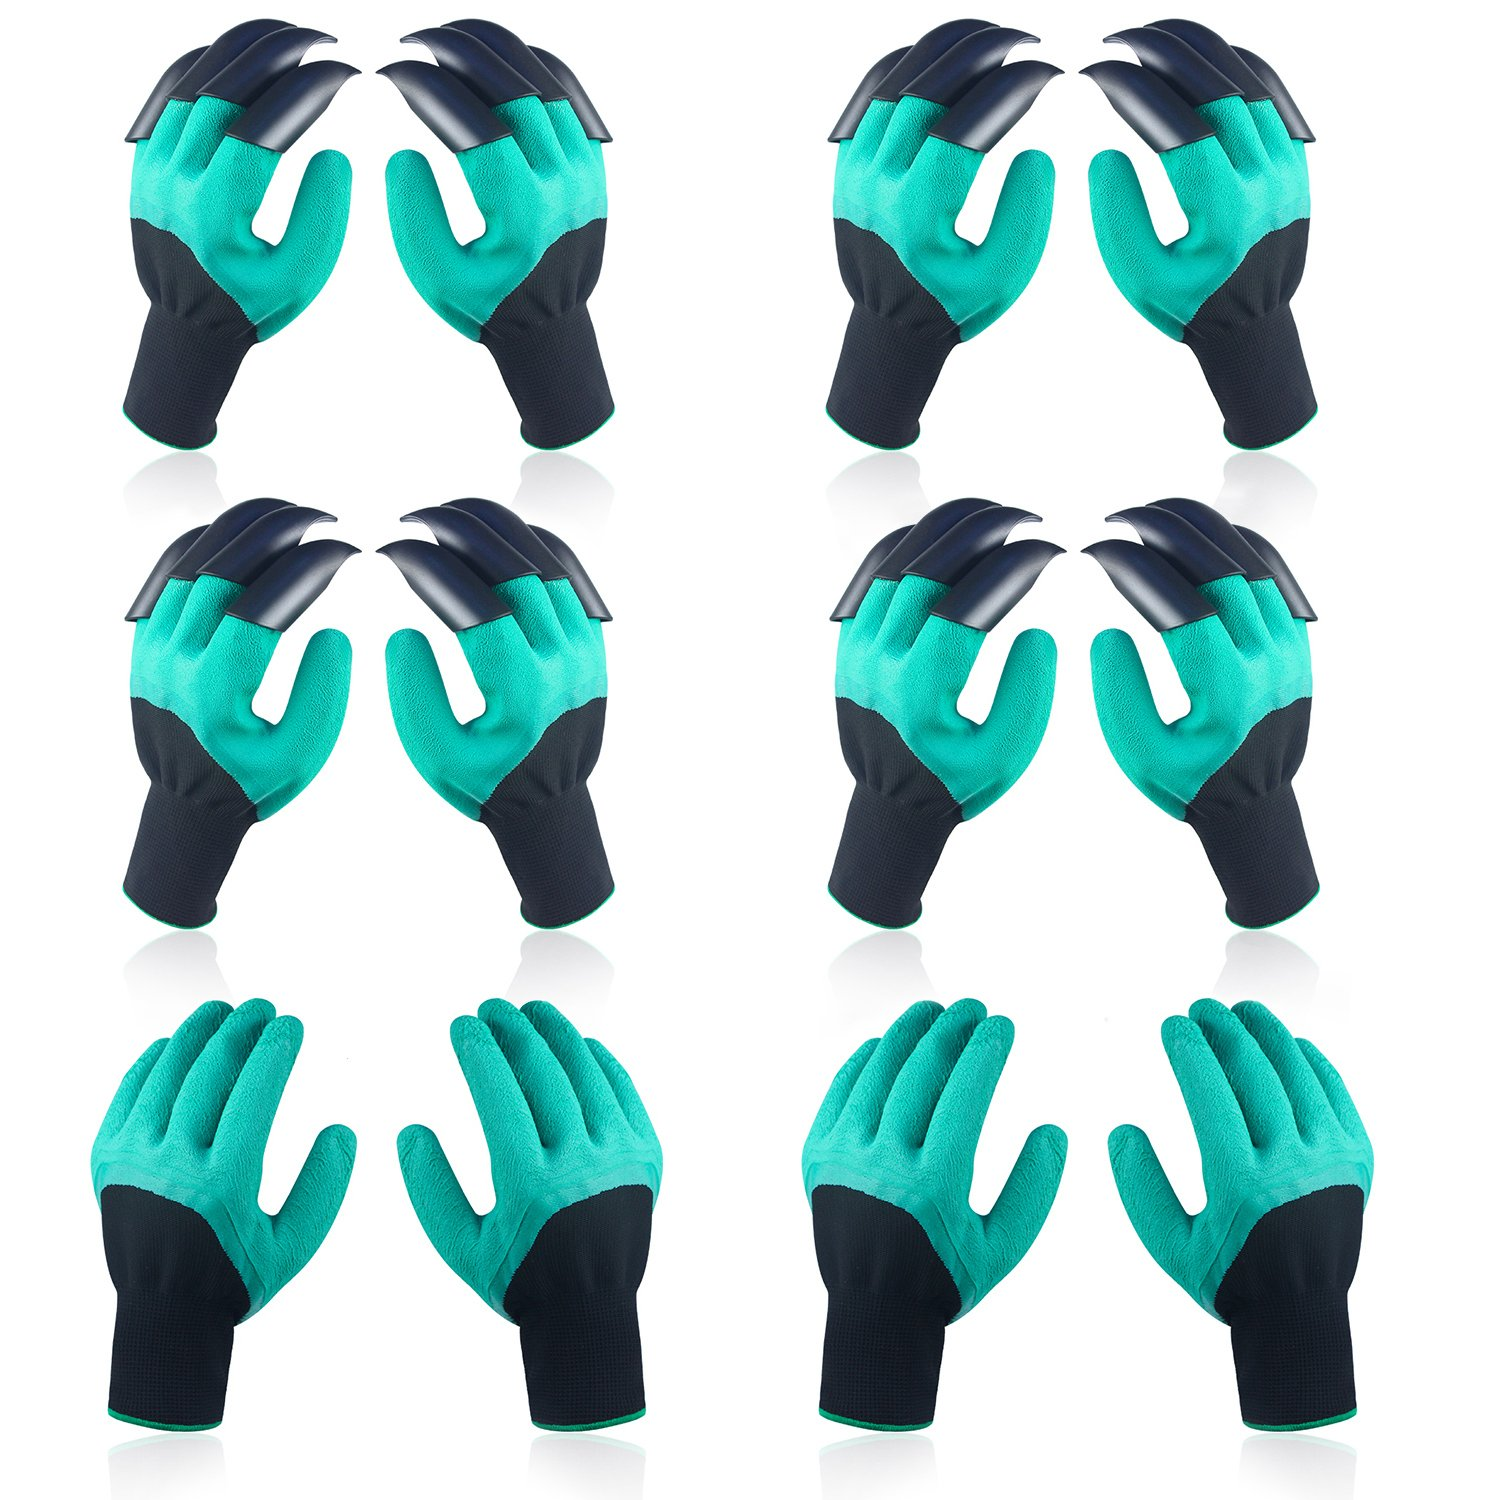 6 Pairs Garden Genie Gloves, Including 4 Pairs Garden Gloves with Claws, 2 Pairs Normal Gloves, Best Safe Gardening Tool, Ideal Gift for Gardeners, Perfect for Digging Weeding Seeding poking Planting